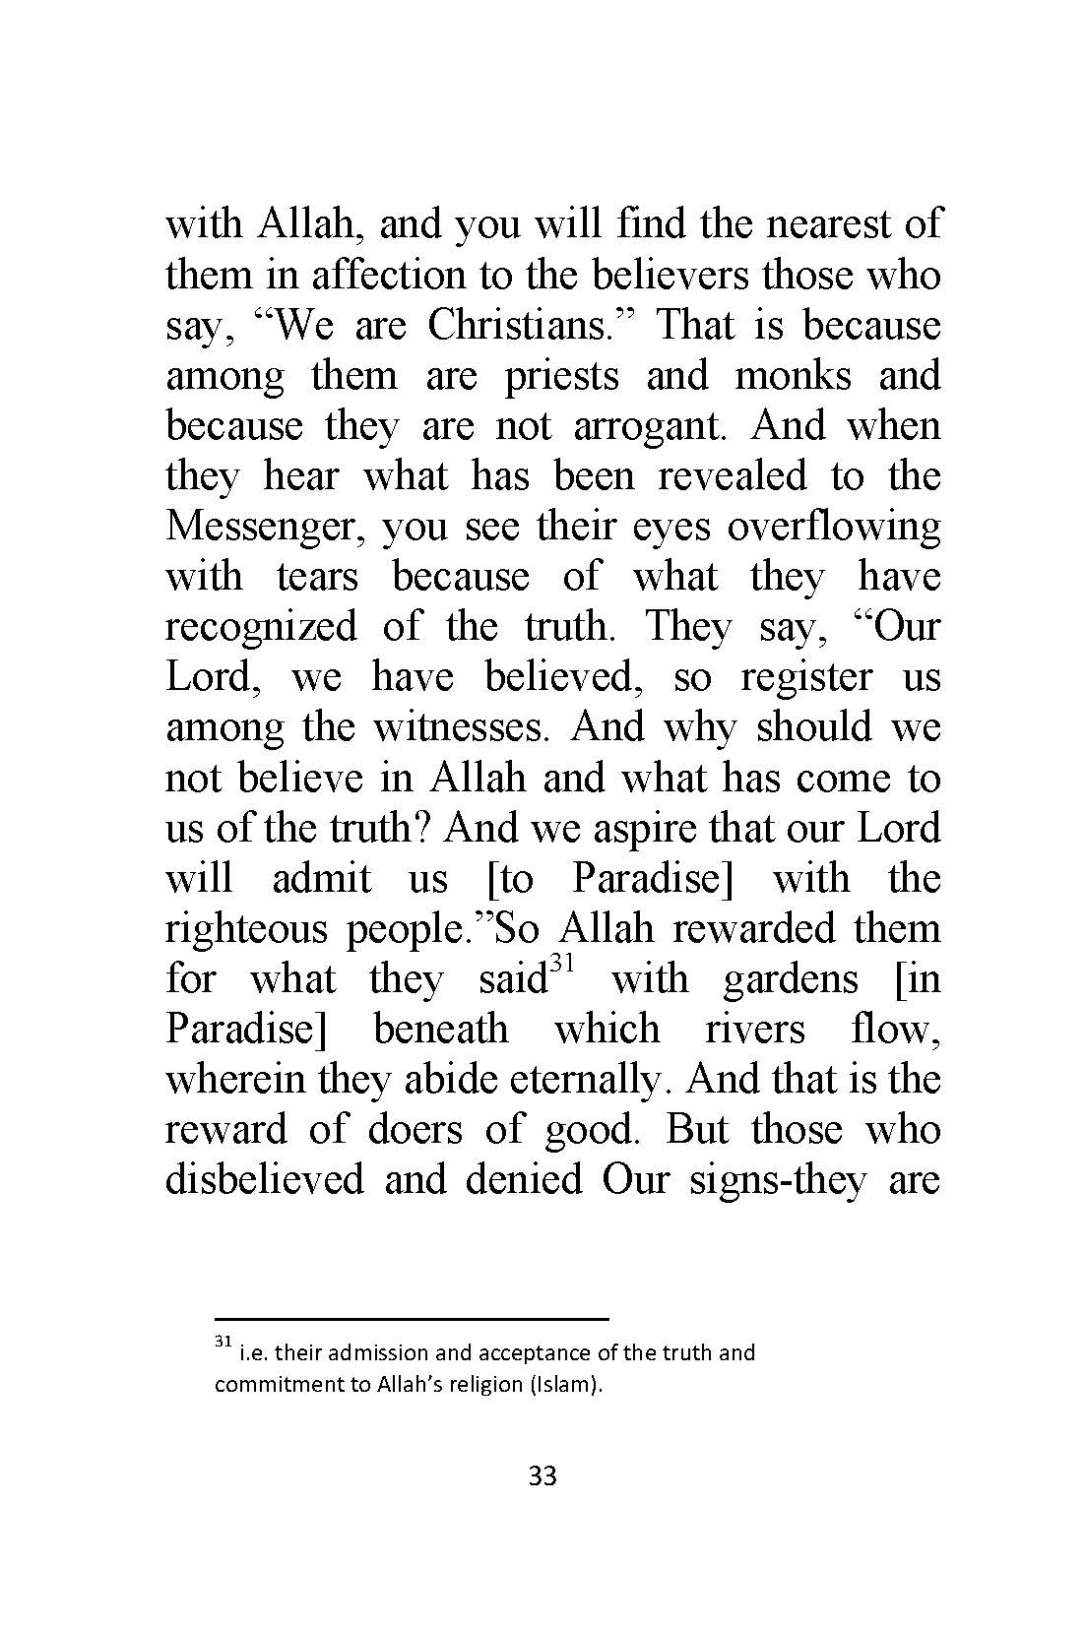 Jesus and Christianity in the Perspective of Islam_Page_37